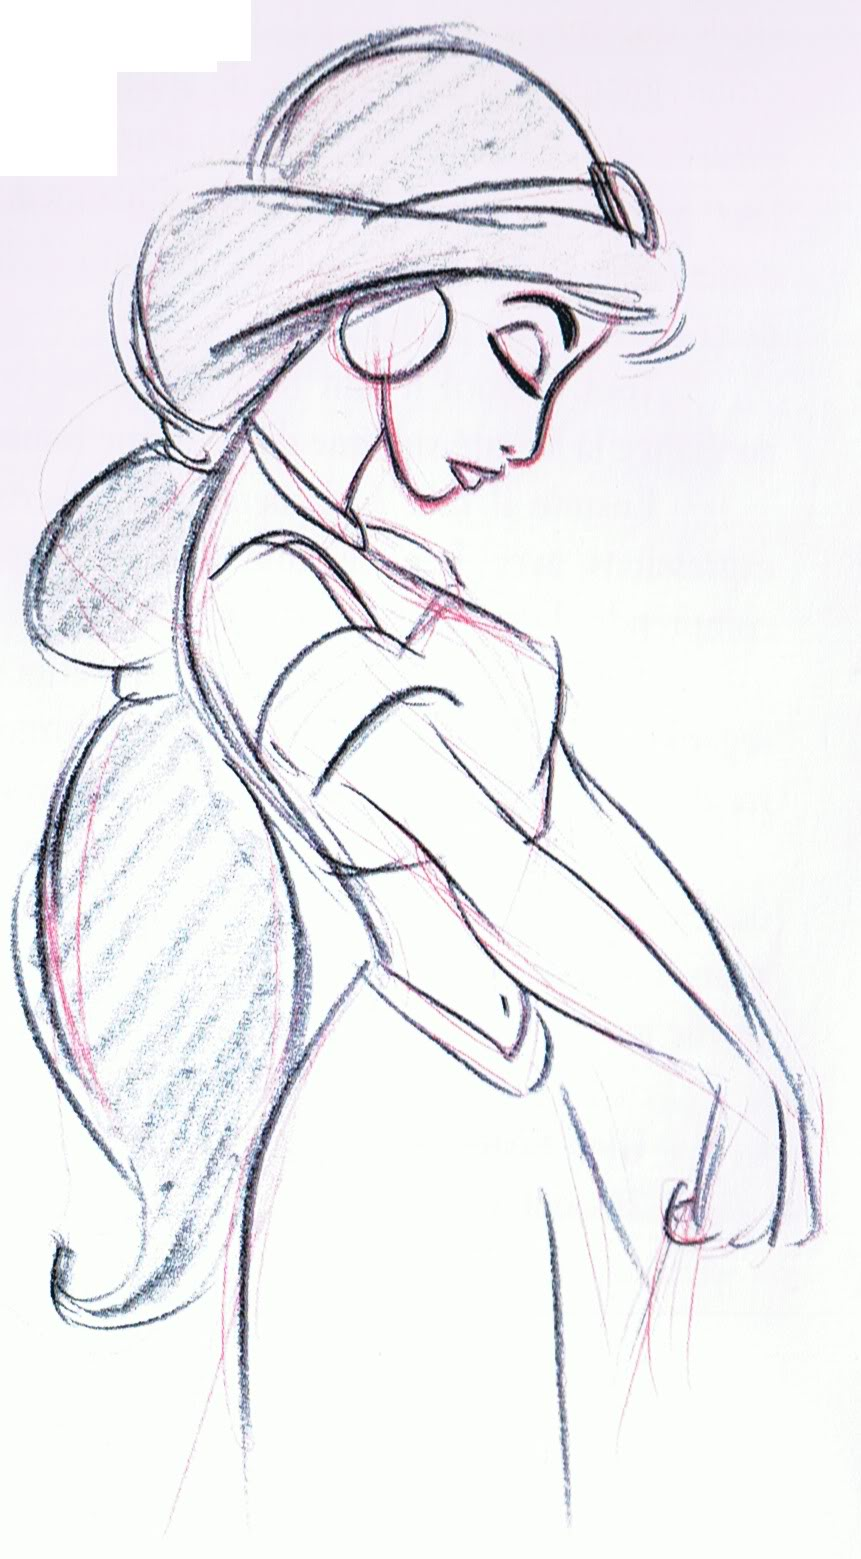 Drawn princess profile How SketchesDisney shoulders du Accueil